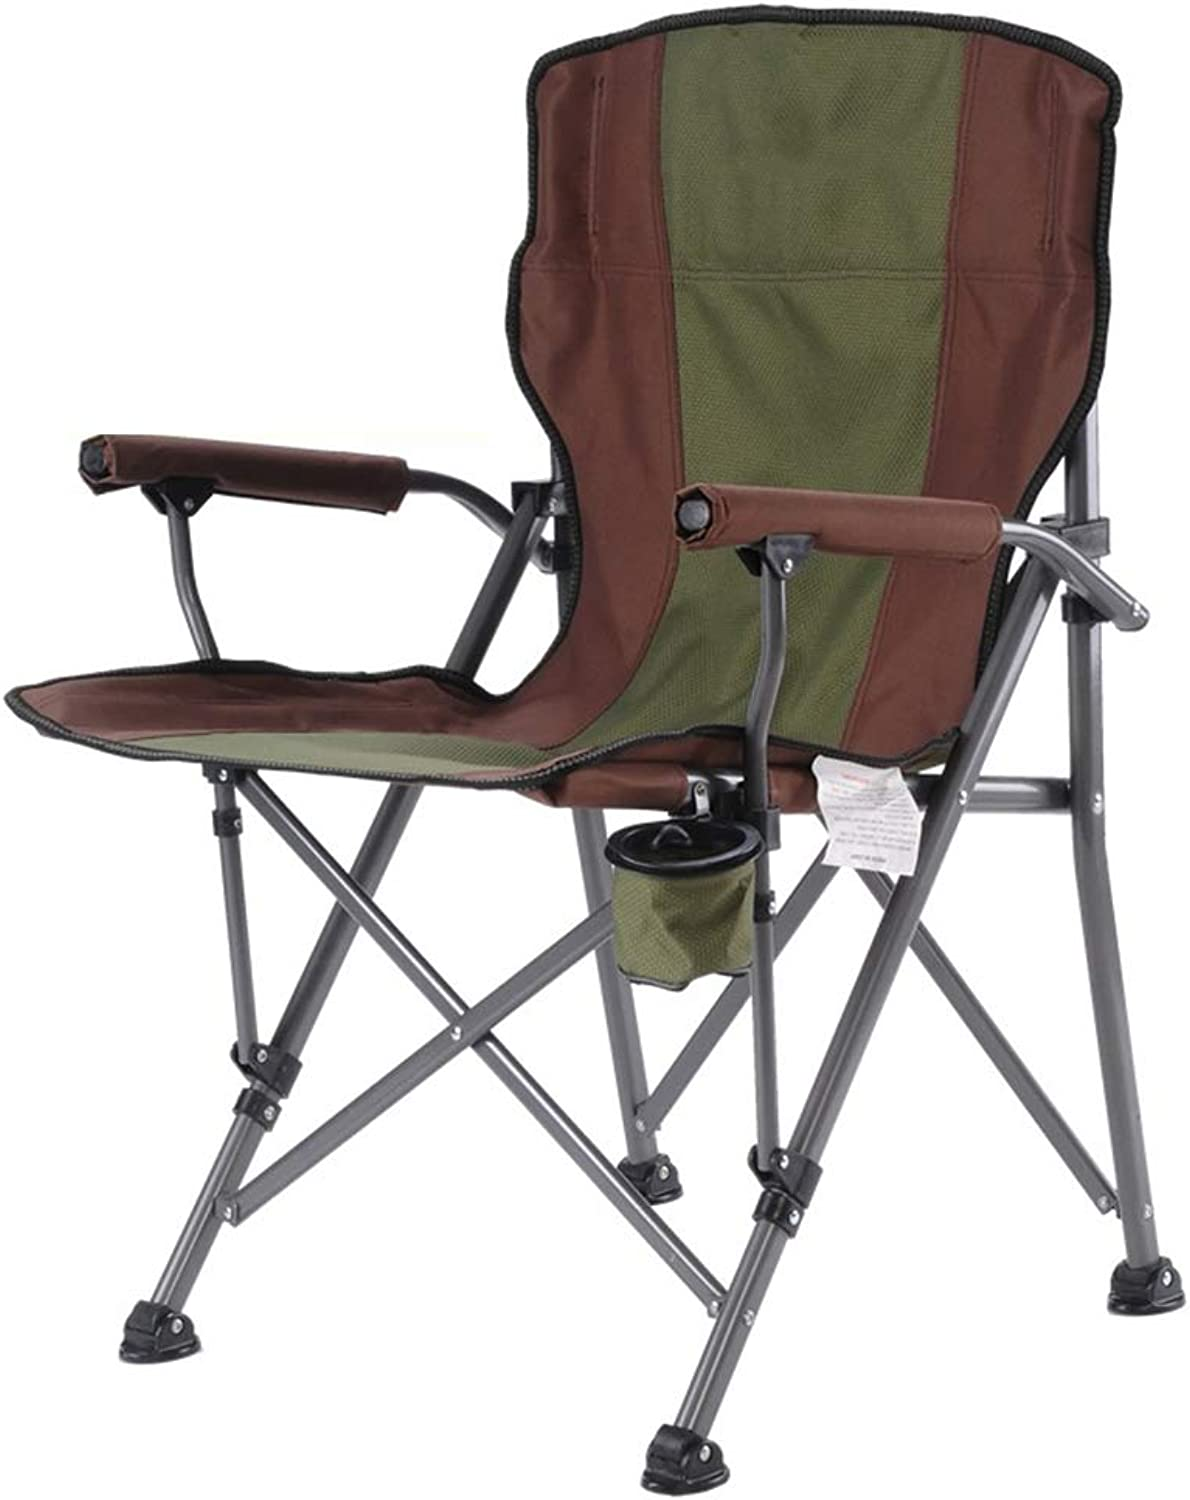 ZENGAI Kestrel Heavy Duty Padded Camping Chair Steel Folding Festival Cup Holder Bag   (color   Green, Size   64x65x94cm)